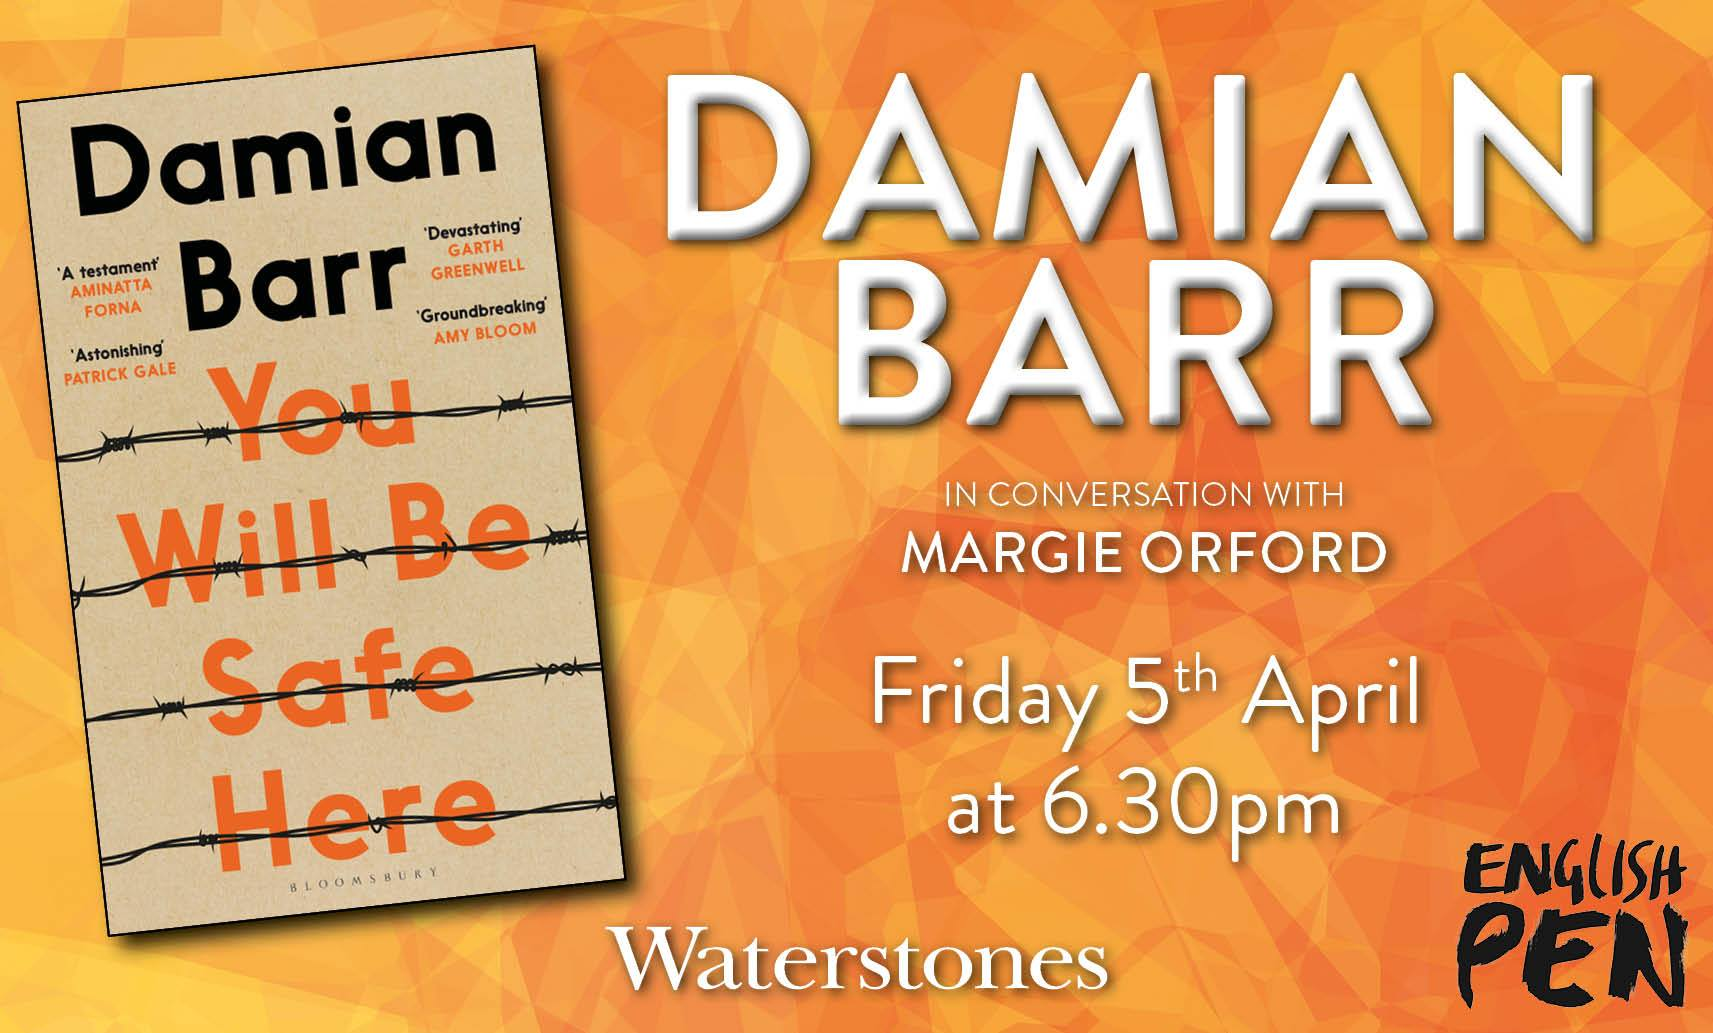 Damian Barr inn conversation with Margie Orford